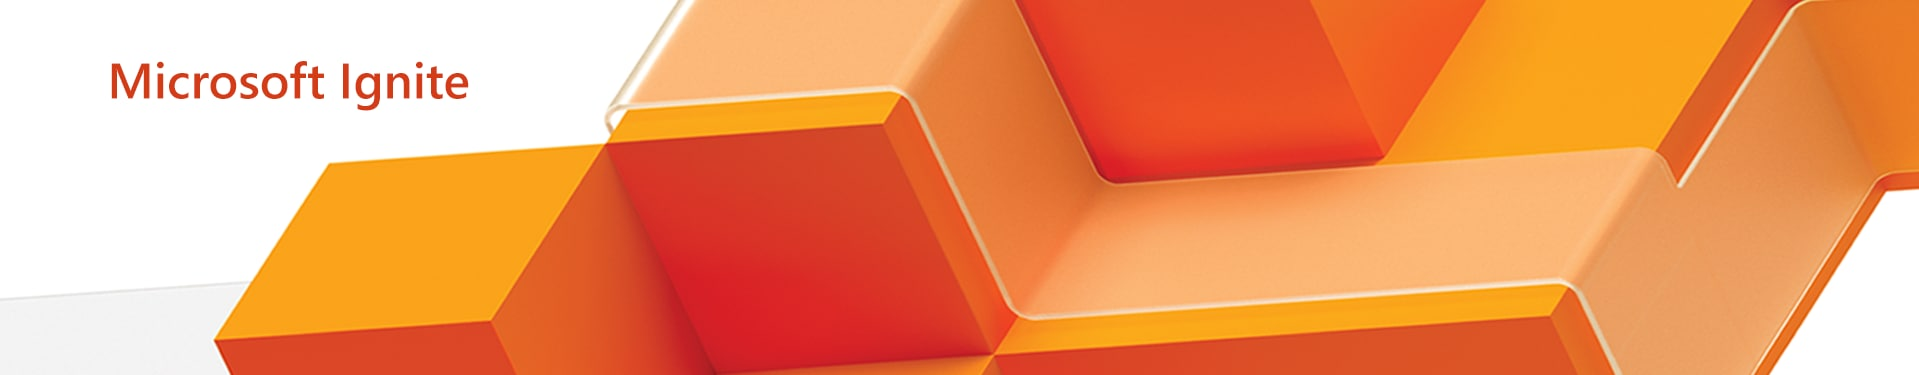 Microsoft Ignite event graphic composed of a bright orange geometric pattern with a clear band forming a path over the top